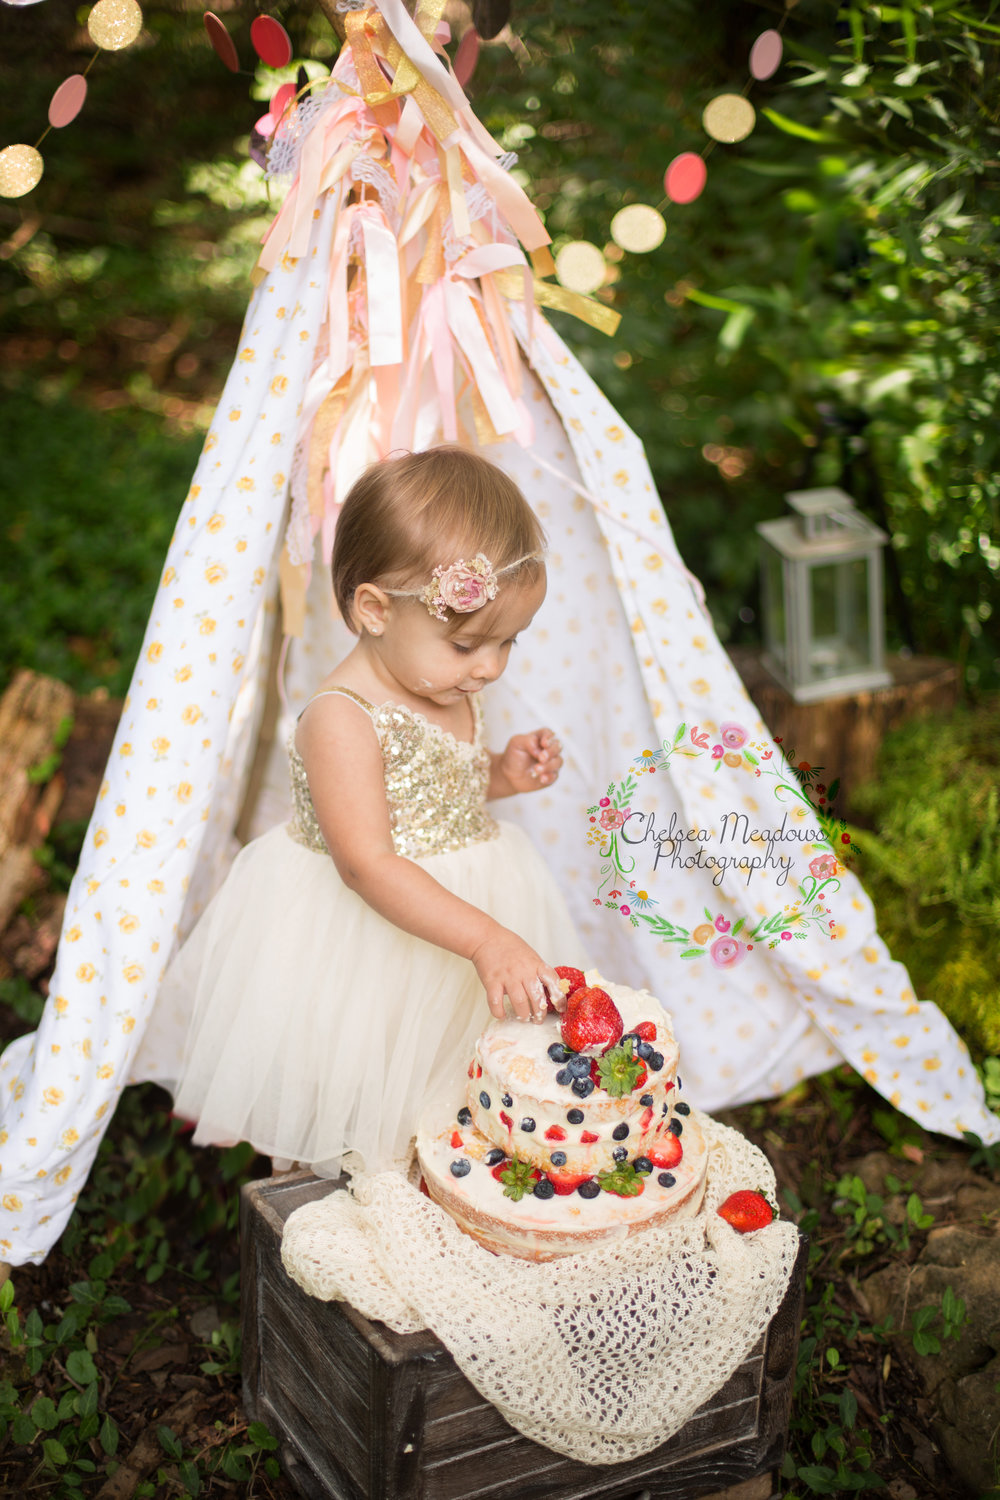 Paisley First Birthay Cake Smash - Nashville Family Photographer - Chelsea Meadows Photography (36).jpg